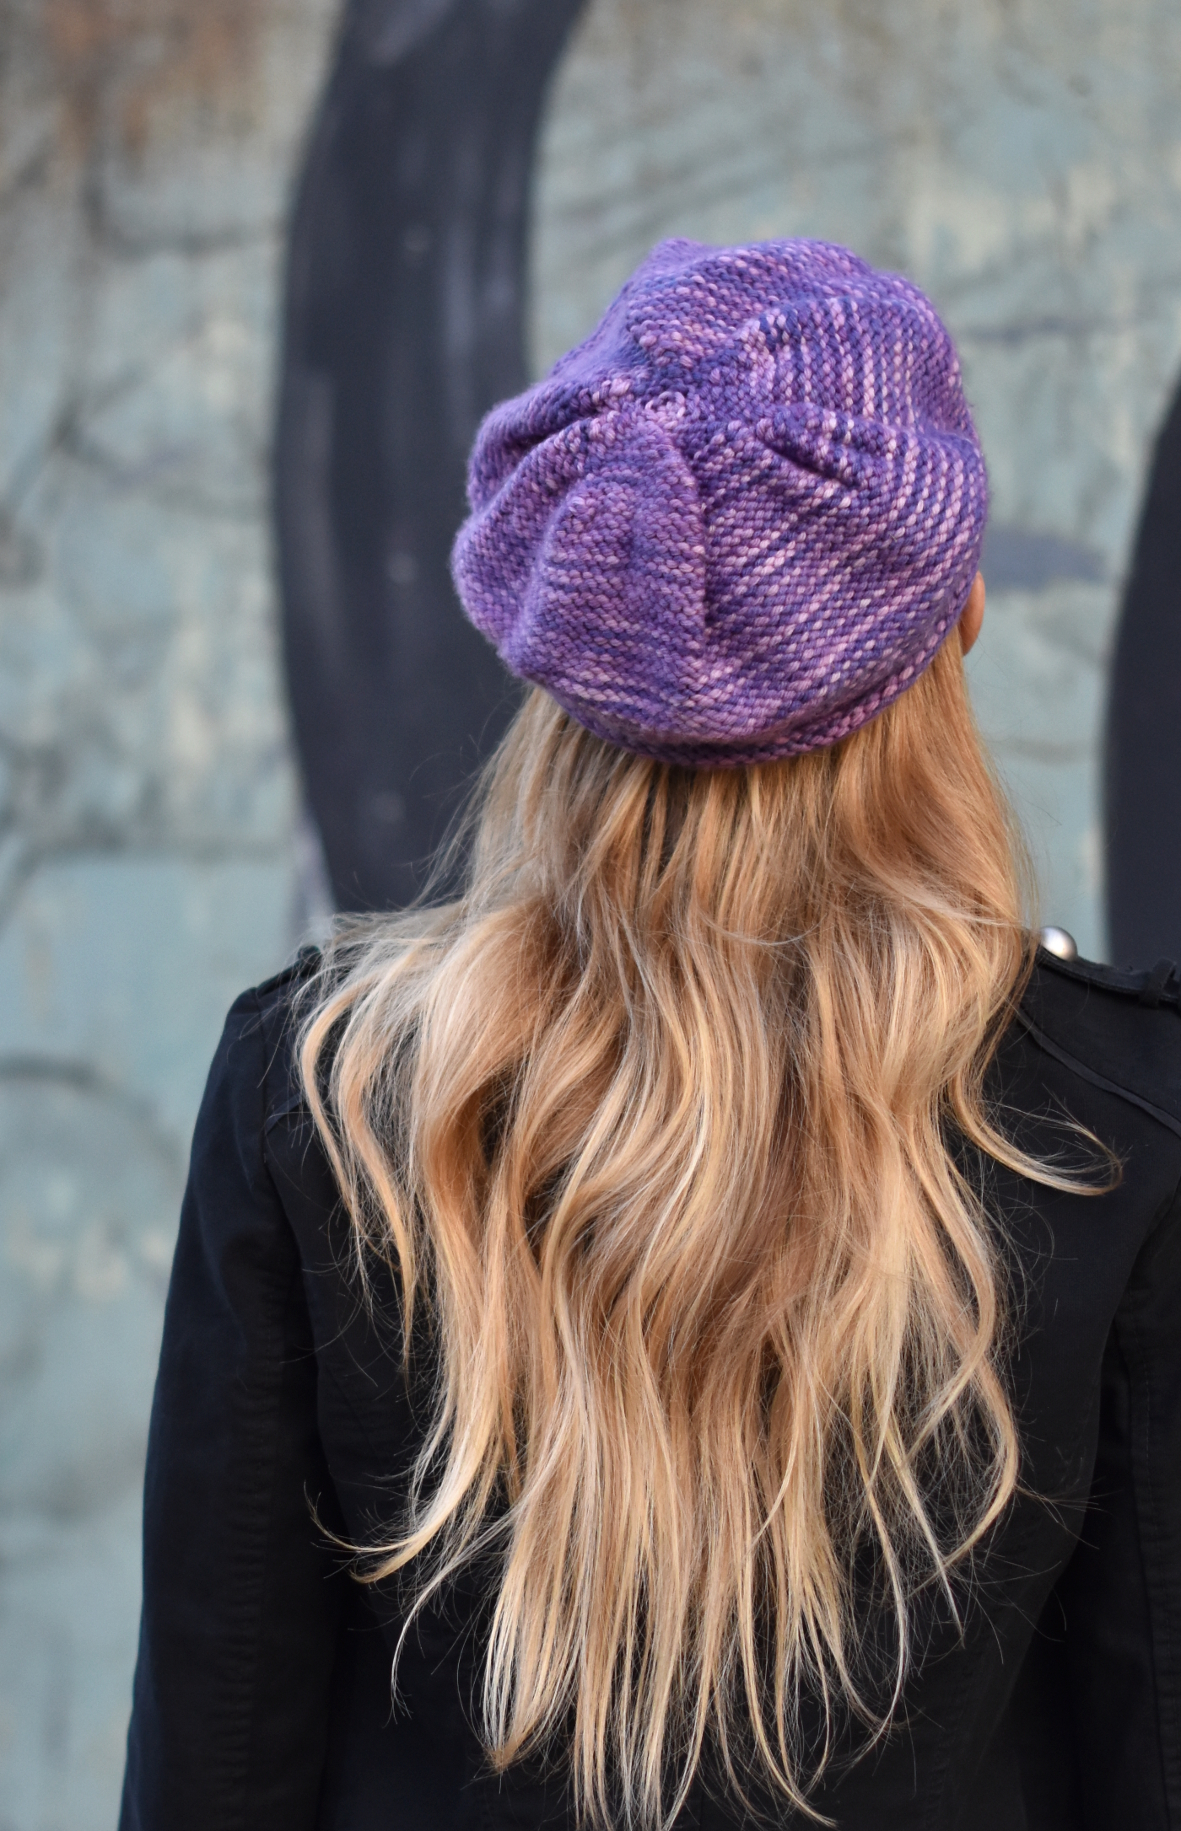 Urchin Cap knitting pattern for hand painted yarn